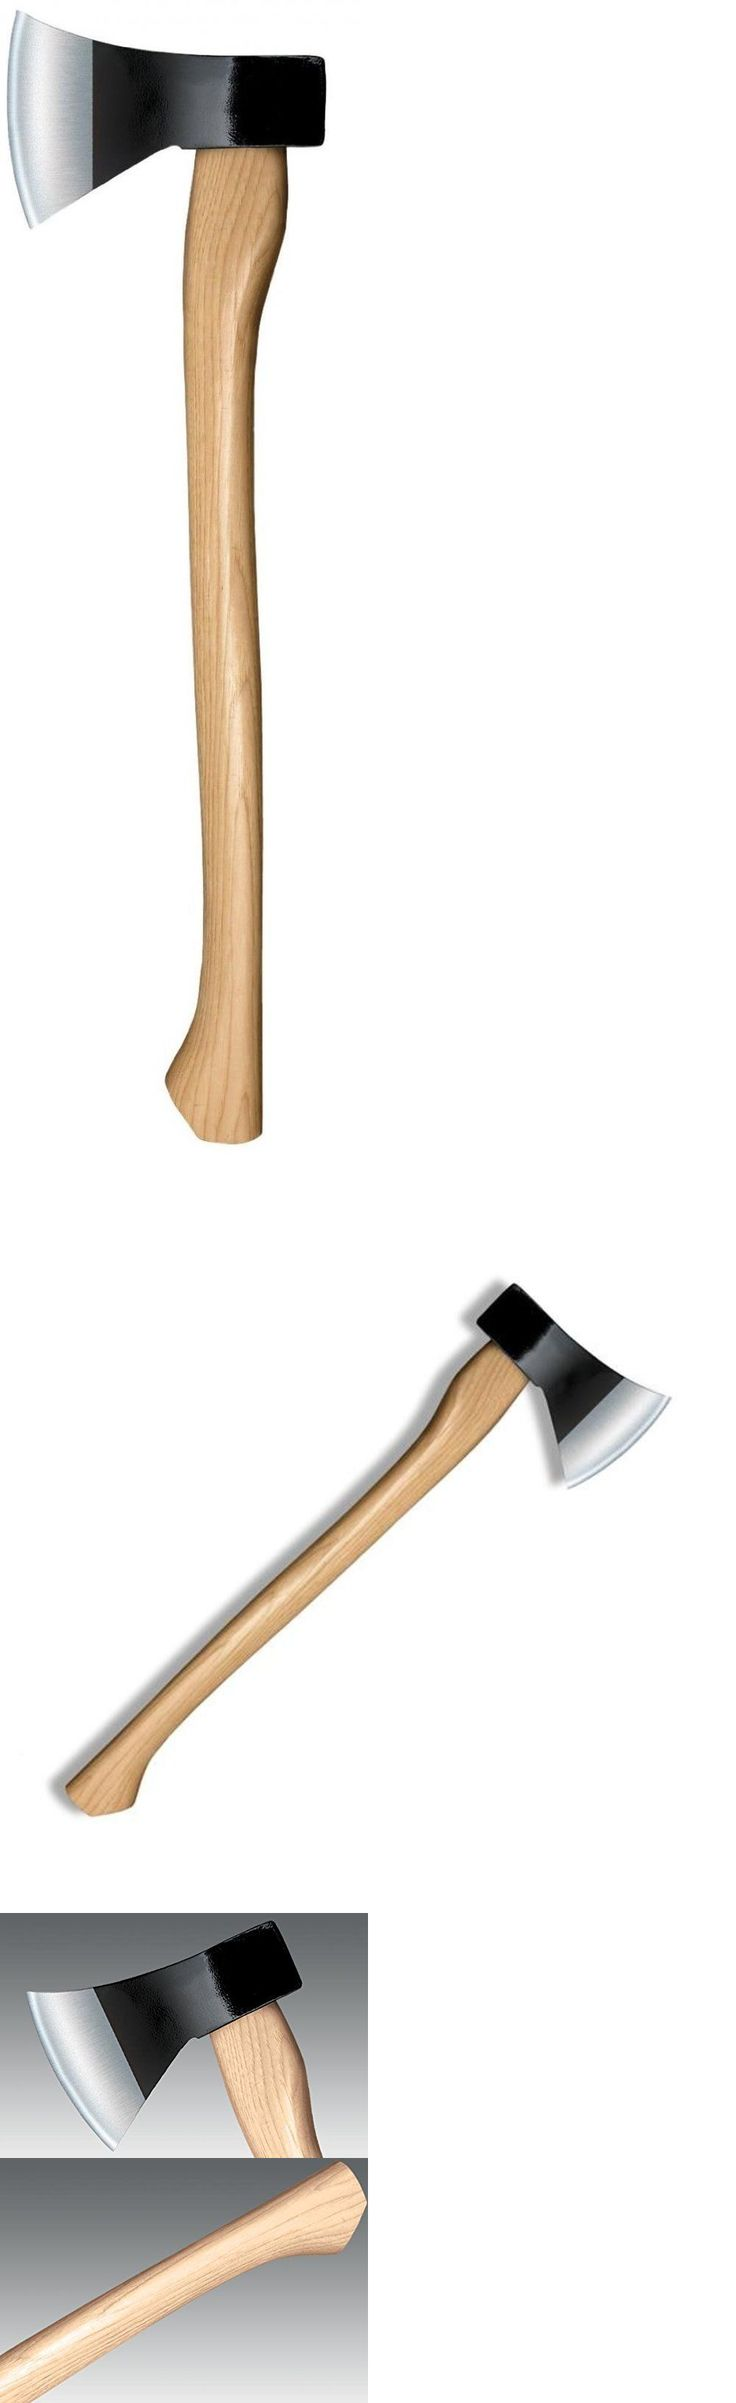 Camping Hatchets and Axes 75234: Splitting Axe Wood Forest Small Hatchet Wildlife Chopping Portable Camp Hand New -> BUY IT NOW ONLY: $39.95 on eBay!